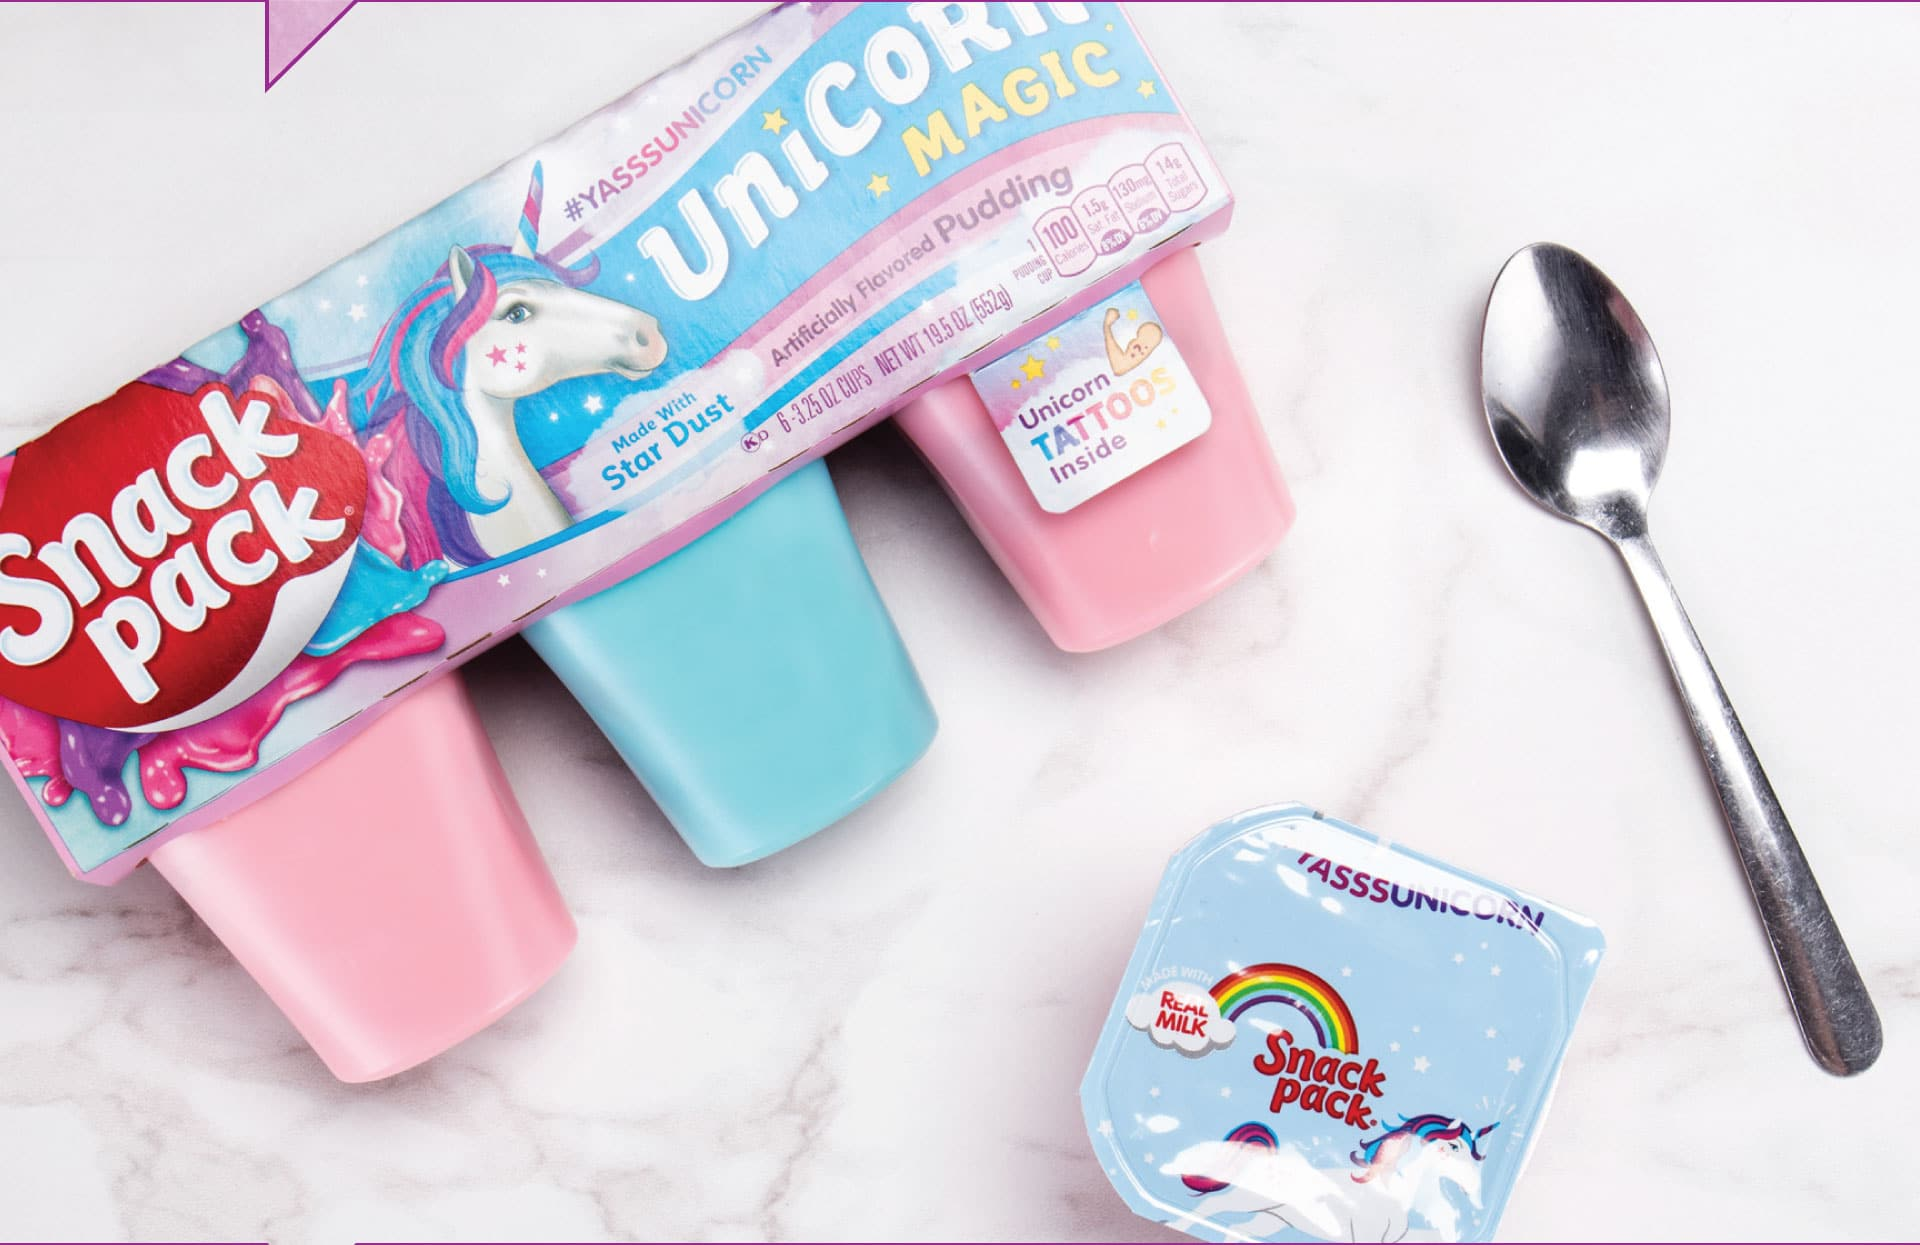 Snack Pack Unicorn Magic - In Use